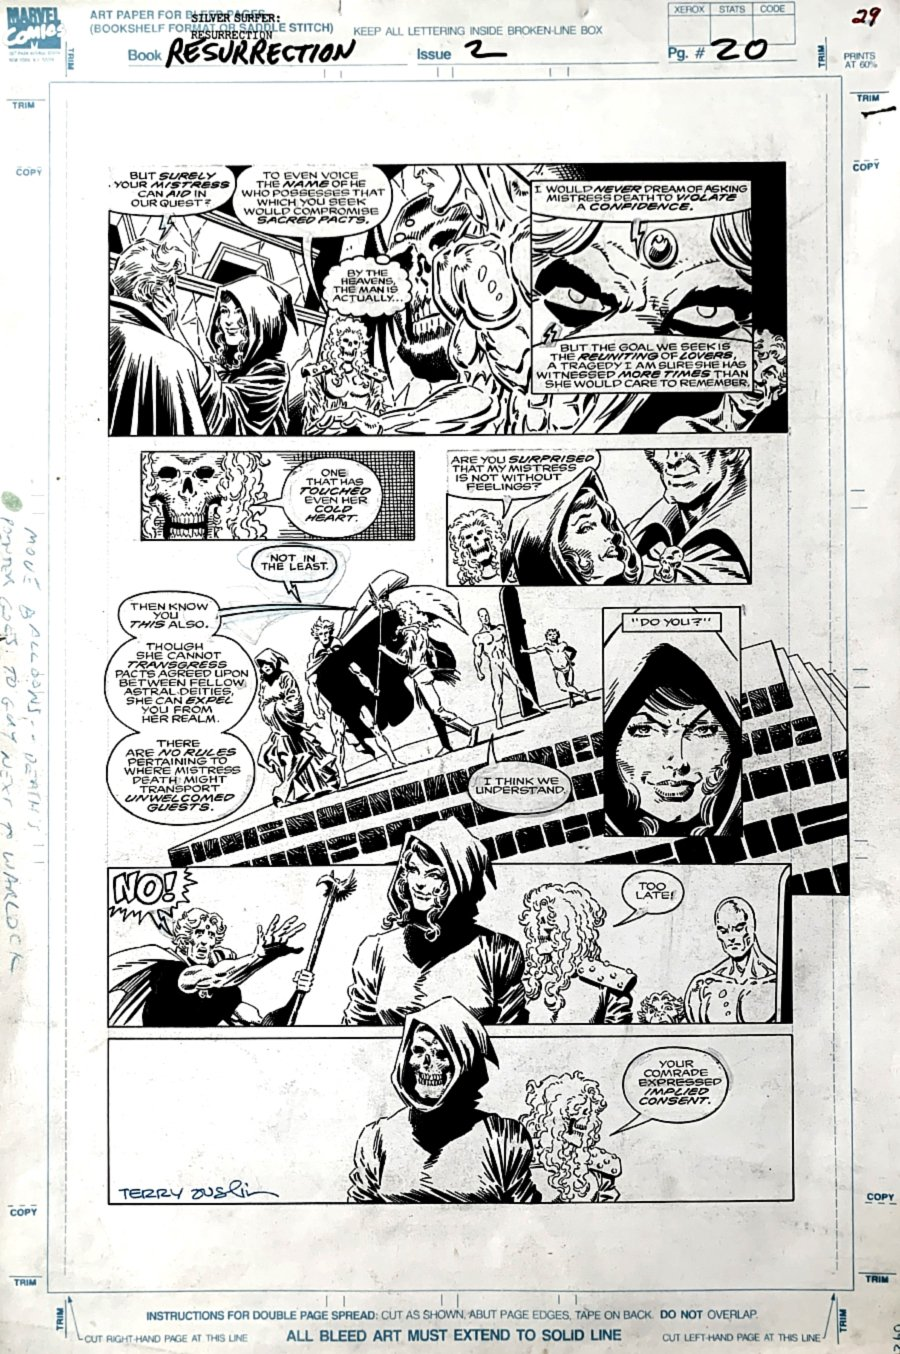 Silver Surfer / Warlock: Resurrection #2 p 20 (Adam Warlock, Silver Surfer, Death, Pip) LARGE ART - 1992